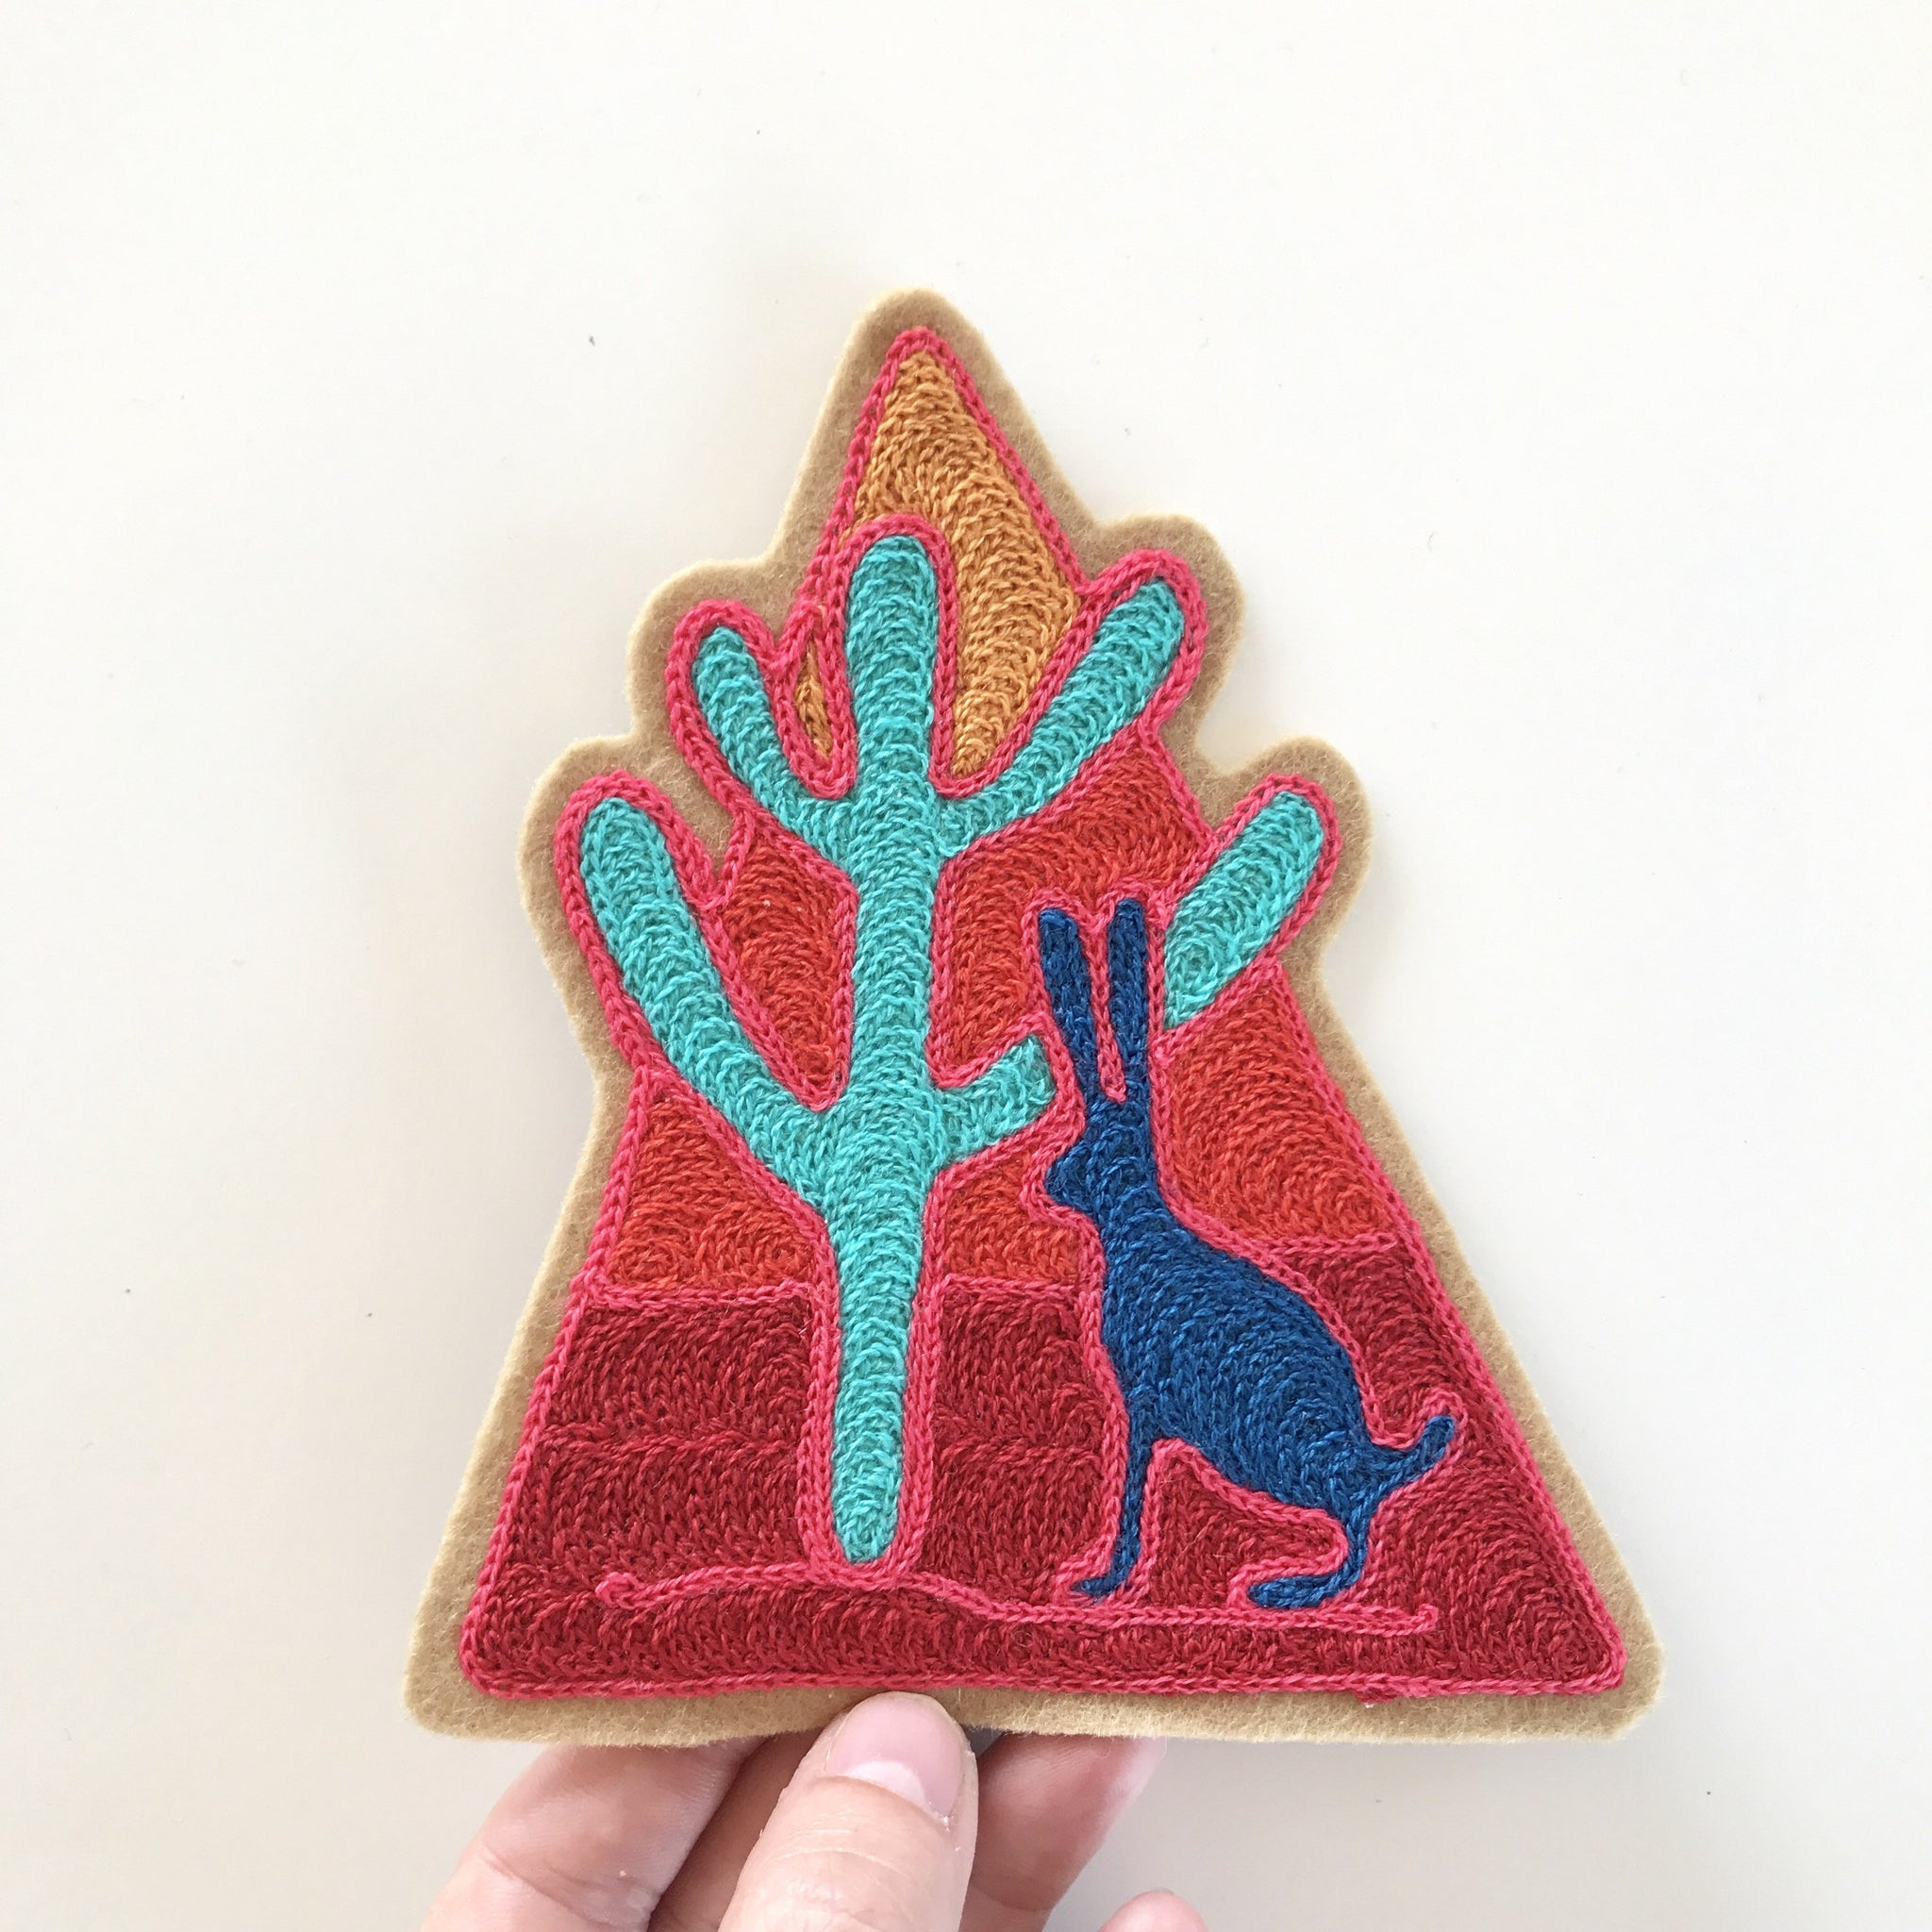 Jackrabbit Chainstitch Patch